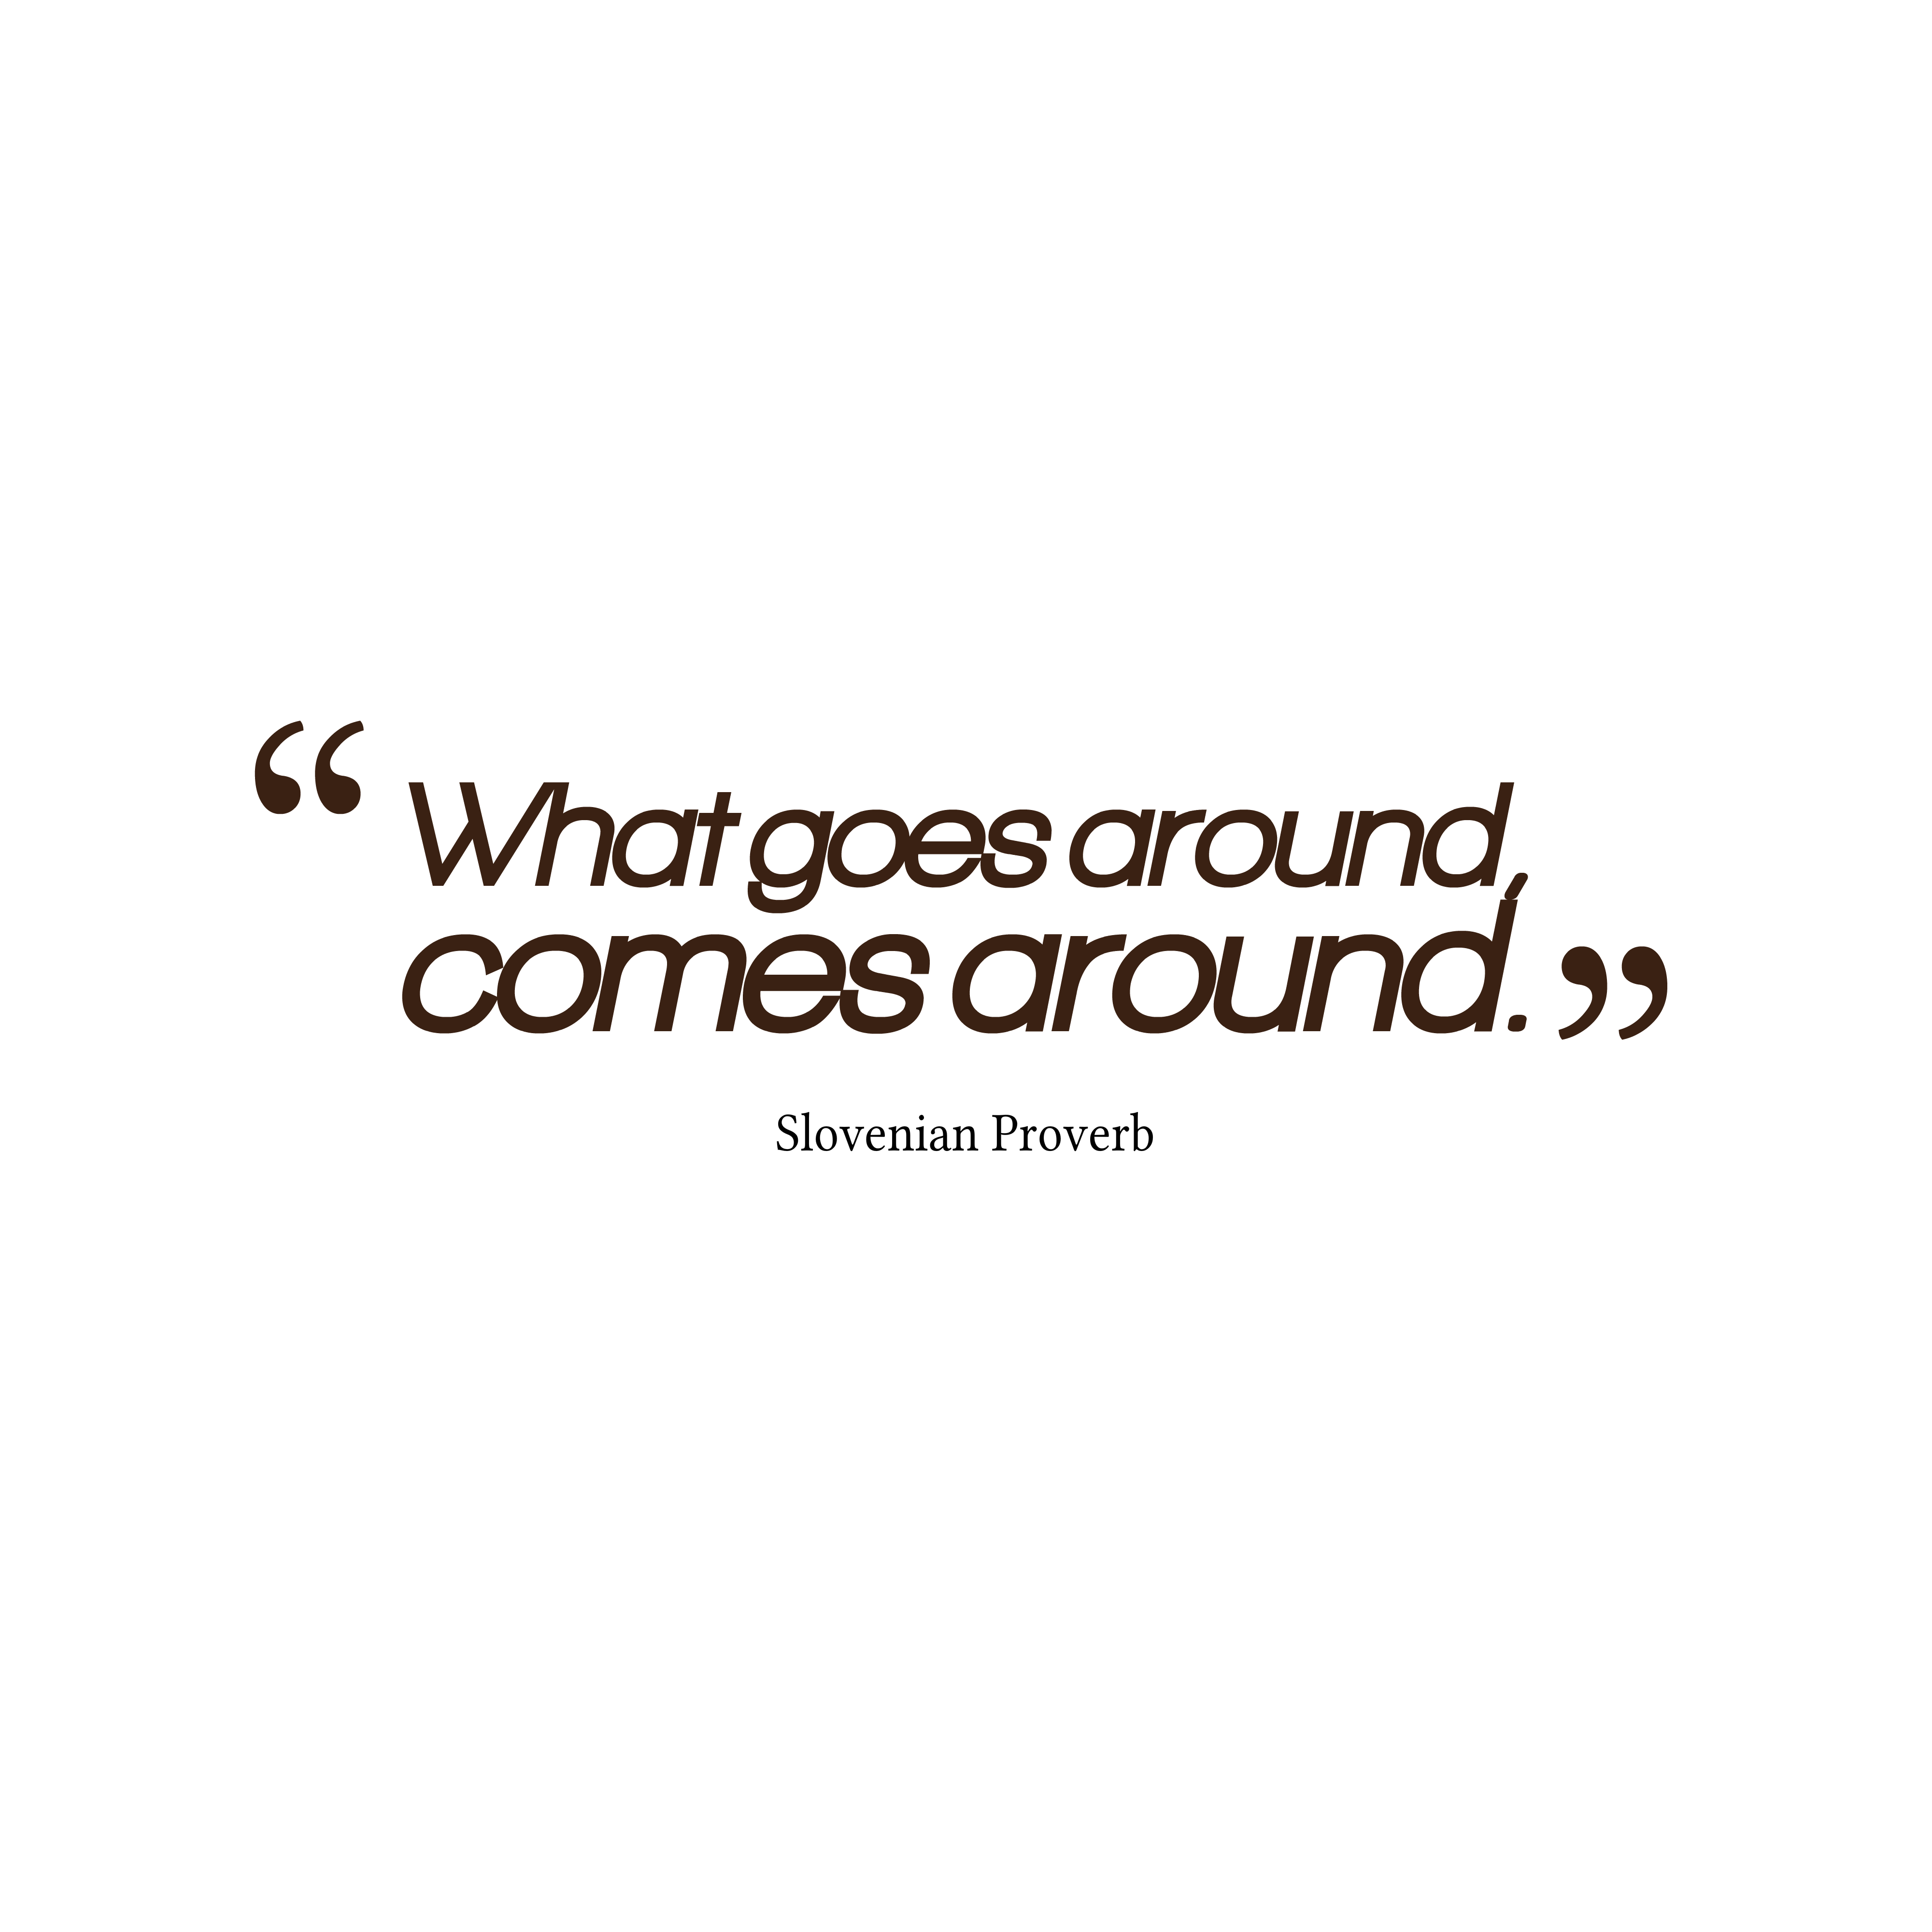 hi-res image of What goes around  comes around Quotes About What Goes Around Comes Around